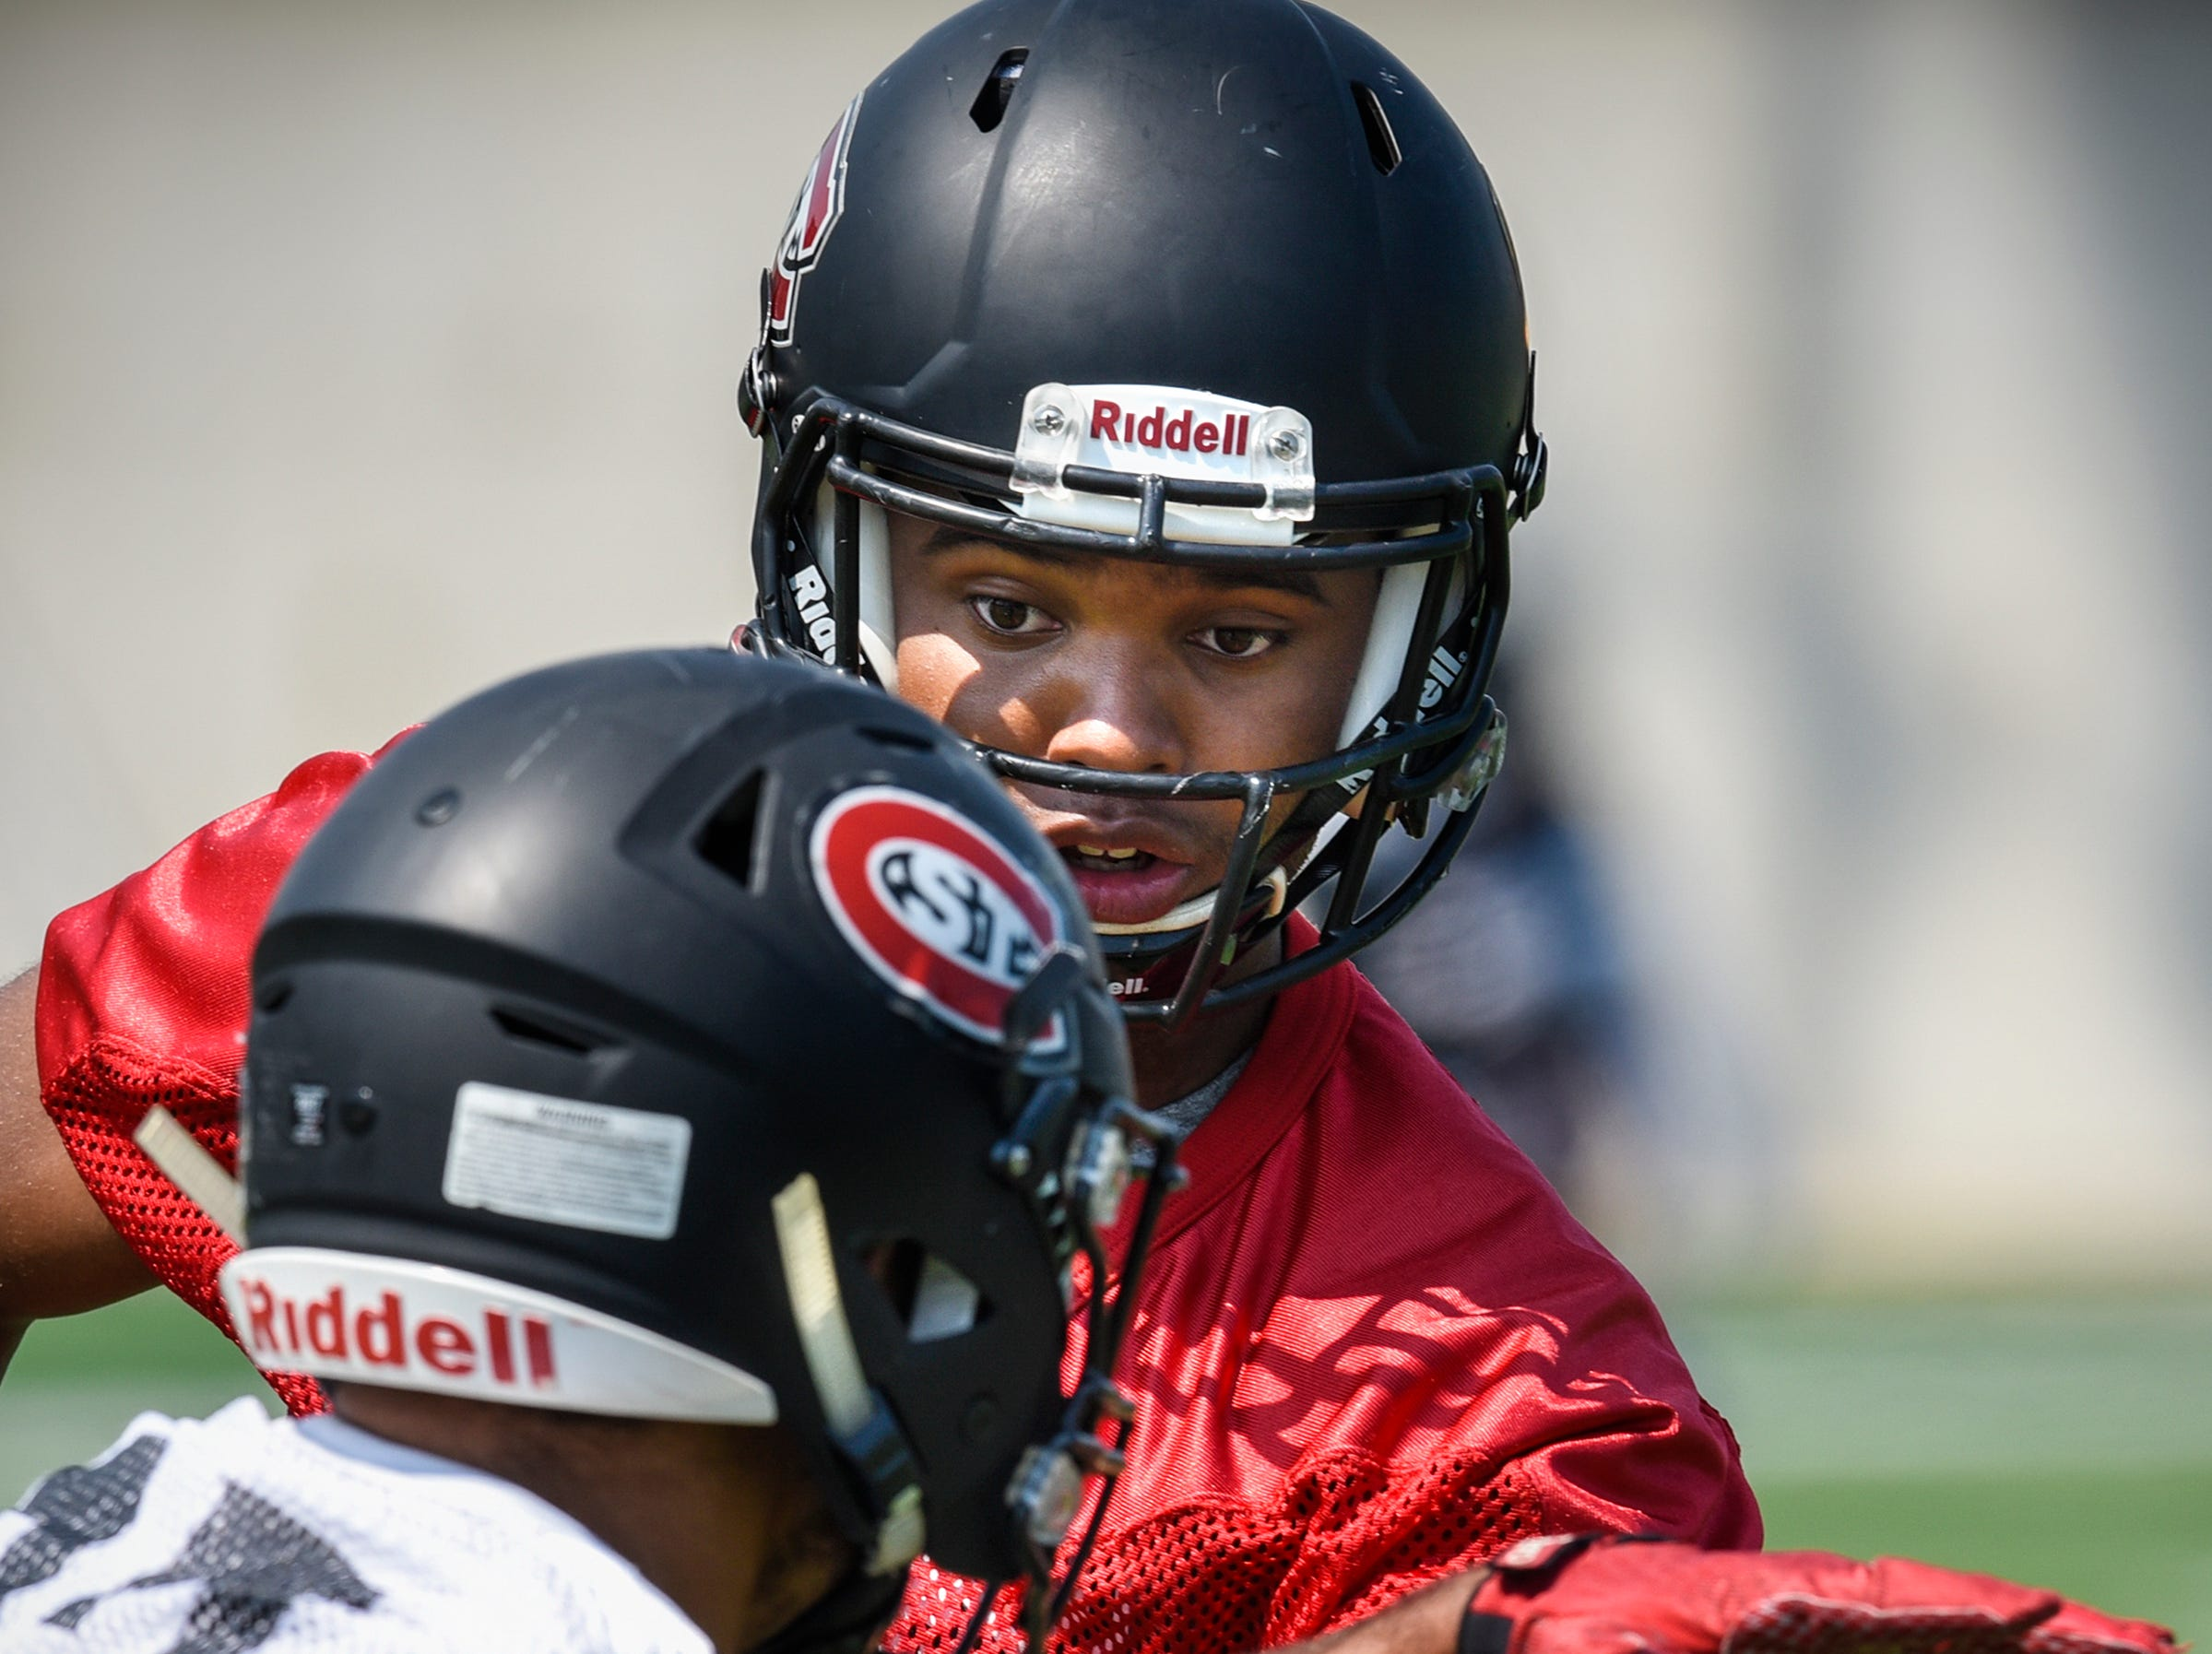 St. Cloud State University quarterback Dwayne Lawhorn hands off to a running back during practice Wednesday, Aug. 8, at Husky Stadium in St. Cloud.